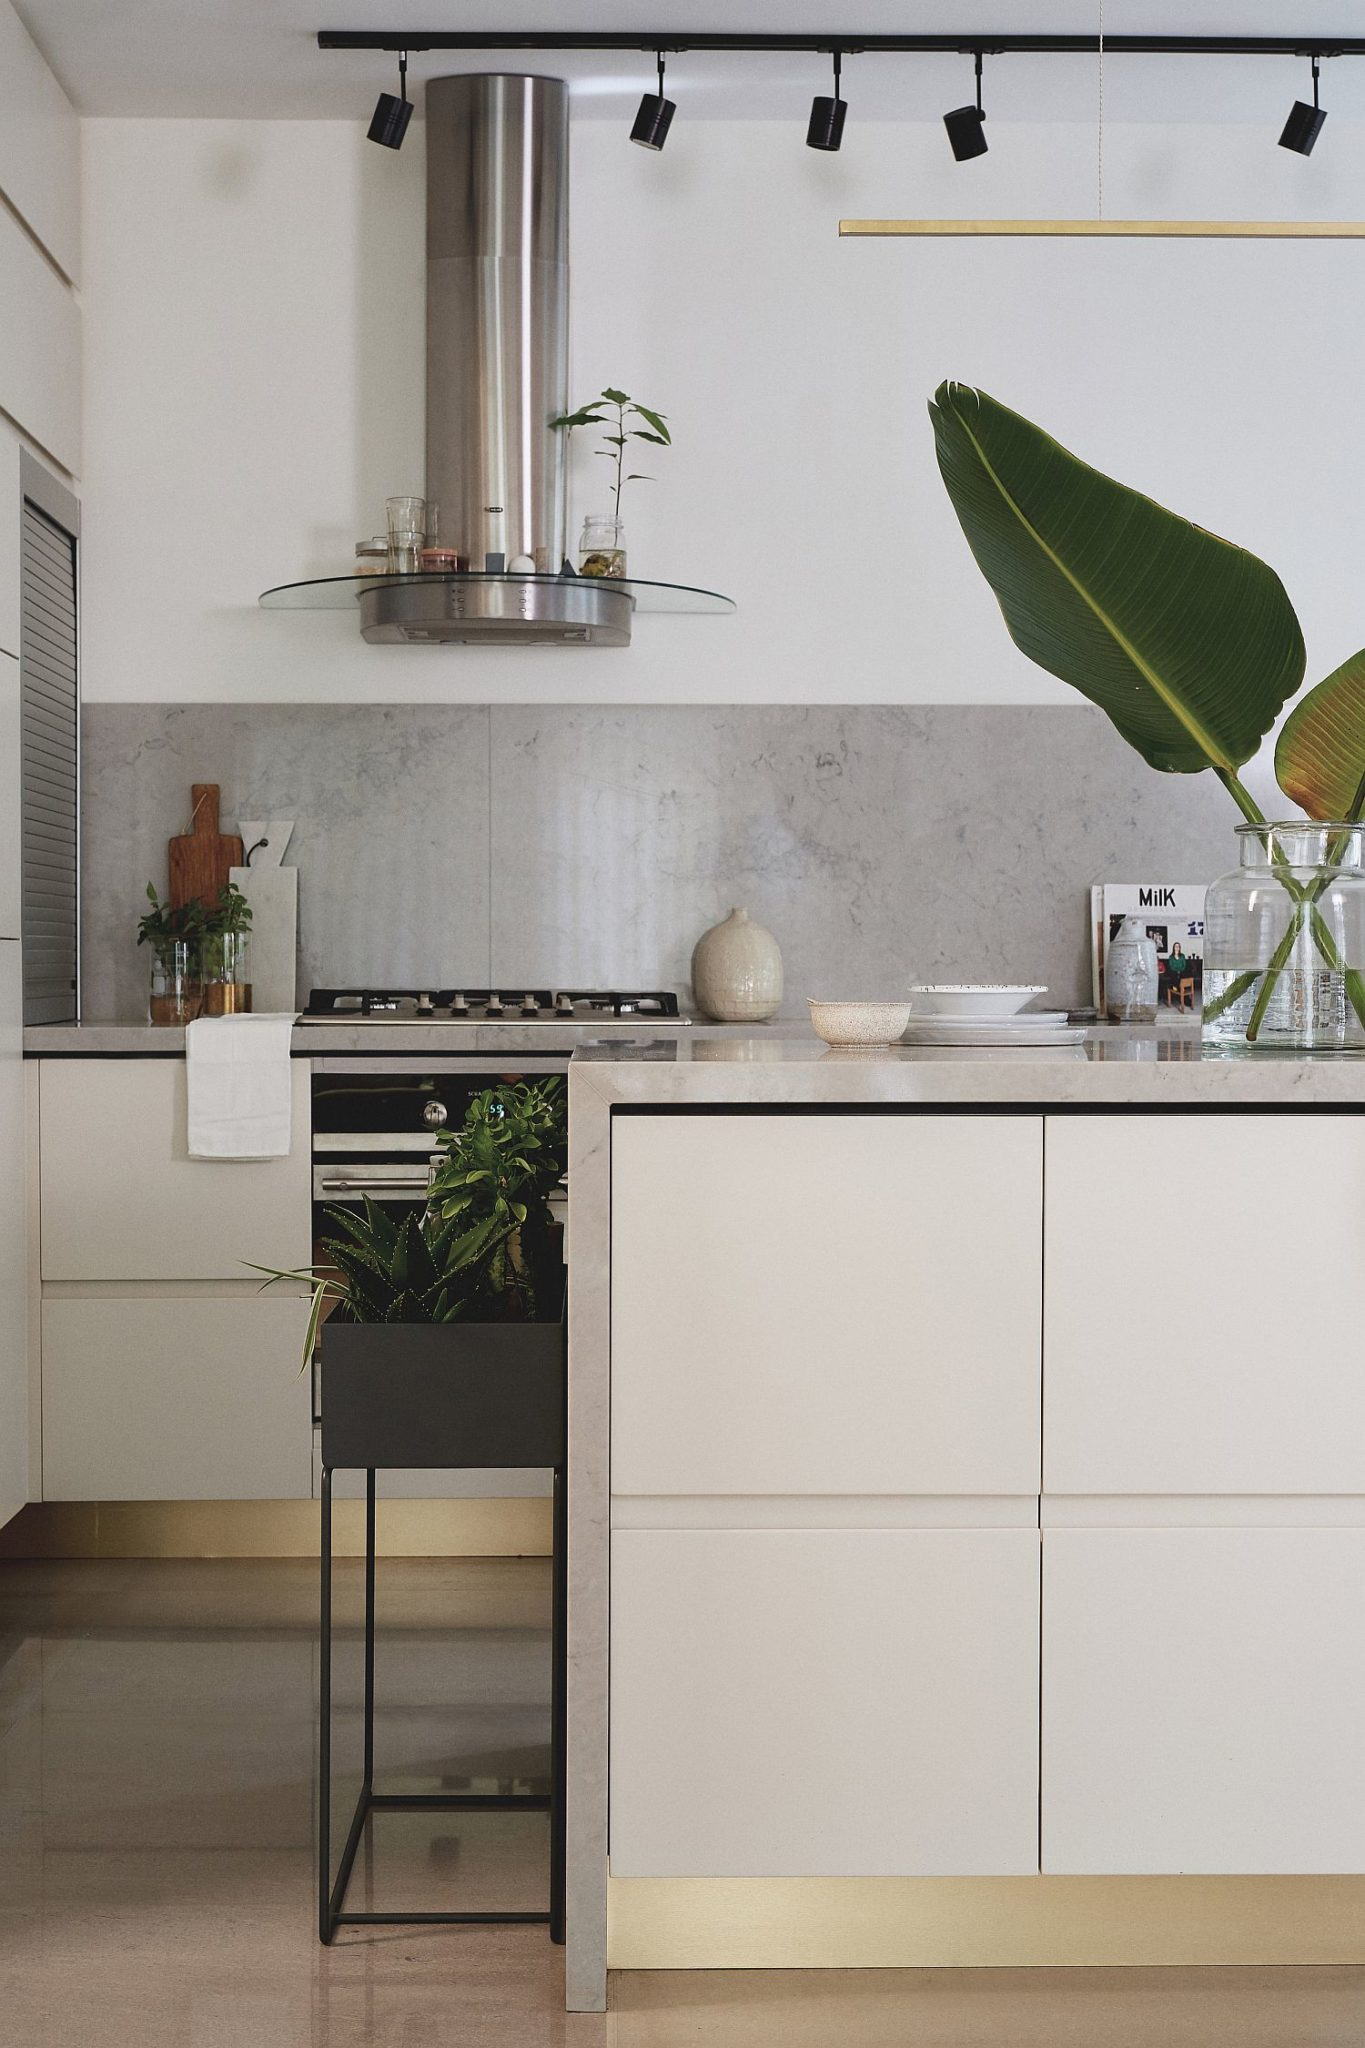 Polished-edges-of-the-kitchen-with-metal-shelves-and-surfaces